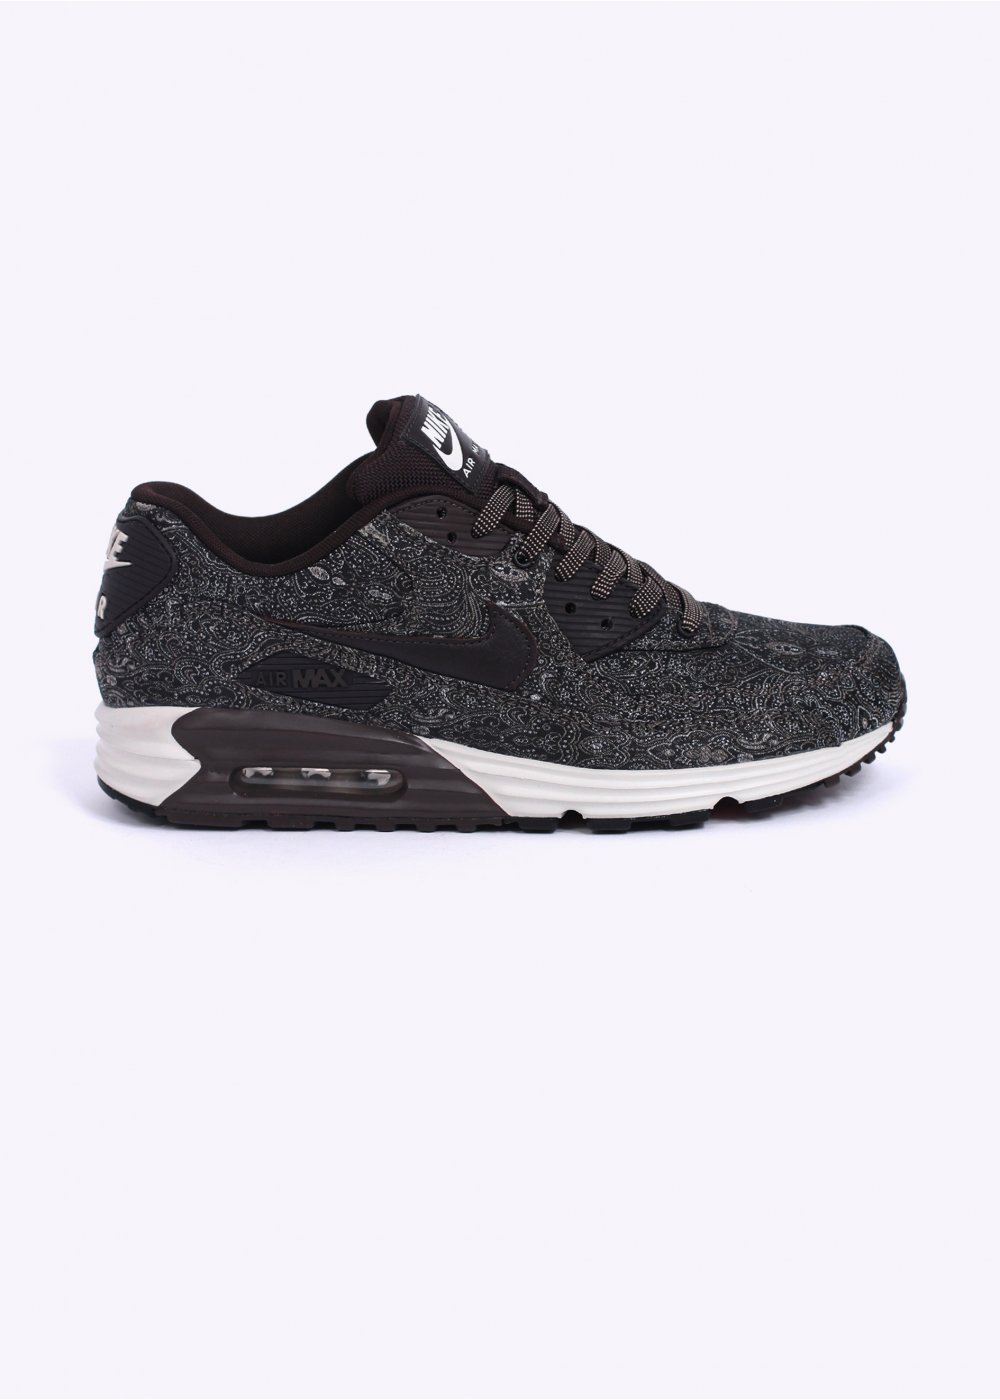 01c4c9ba35 Nike Air Max Lunar 90 'Suit & Tie' PRM QS Trainers - Velvet Brown ...